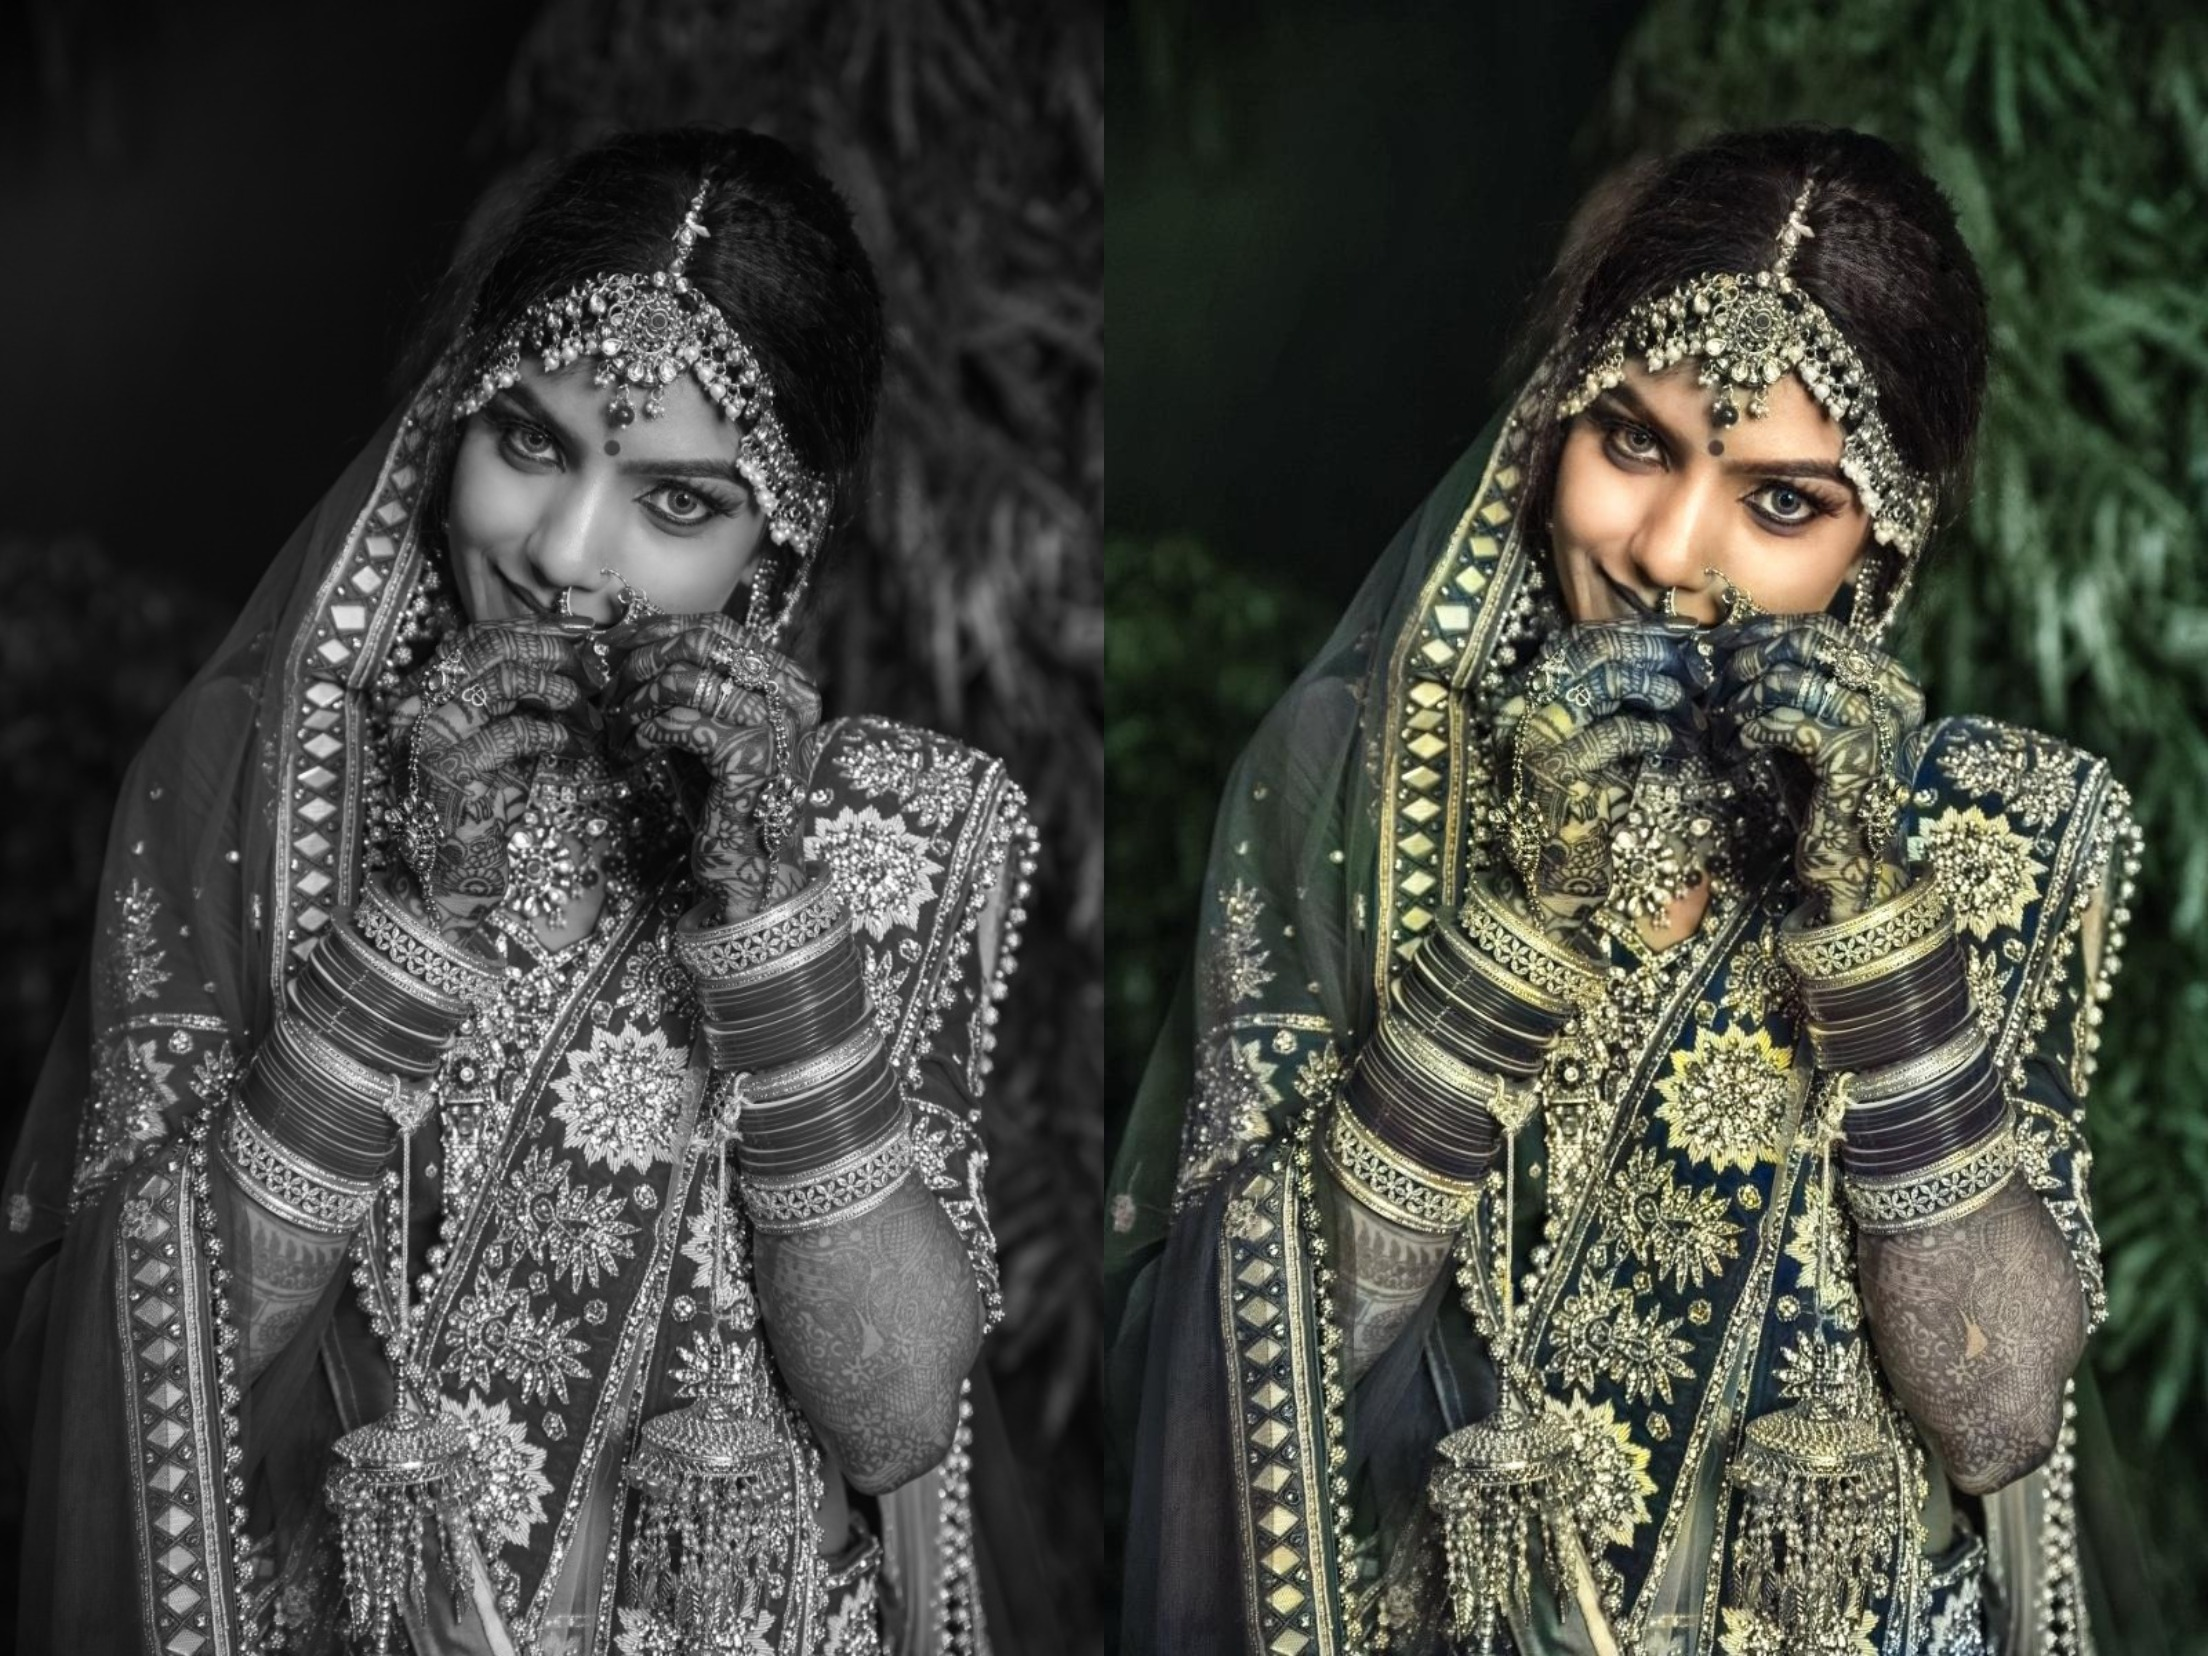 I will realistically colorize your black and white photo.